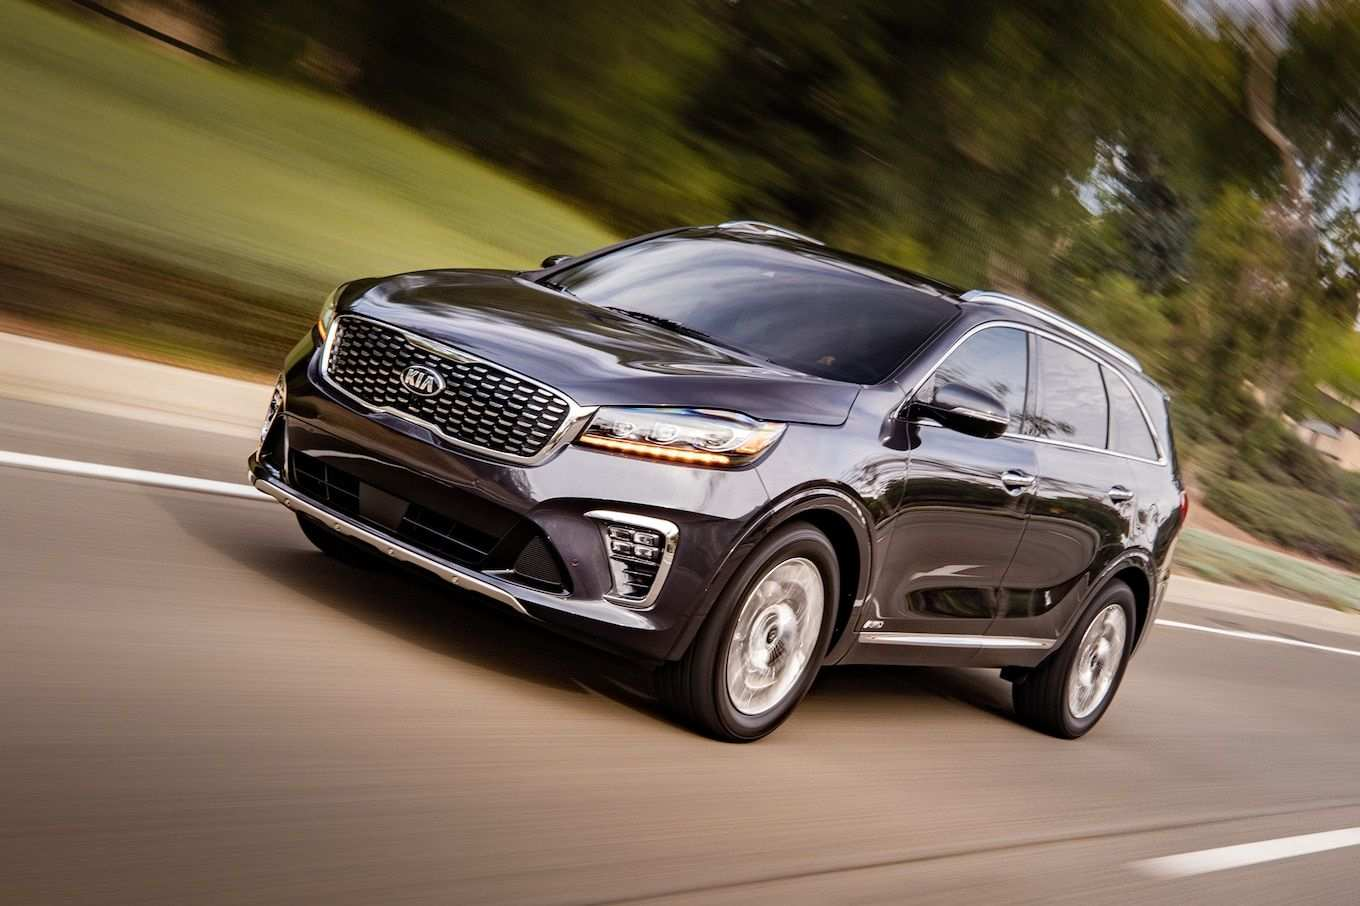 40 Best Review New Kia Vehicles 2019 Exterior And Interior Review Specs and Review for New Kia Vehicles 2019 Exterior And Interior Review